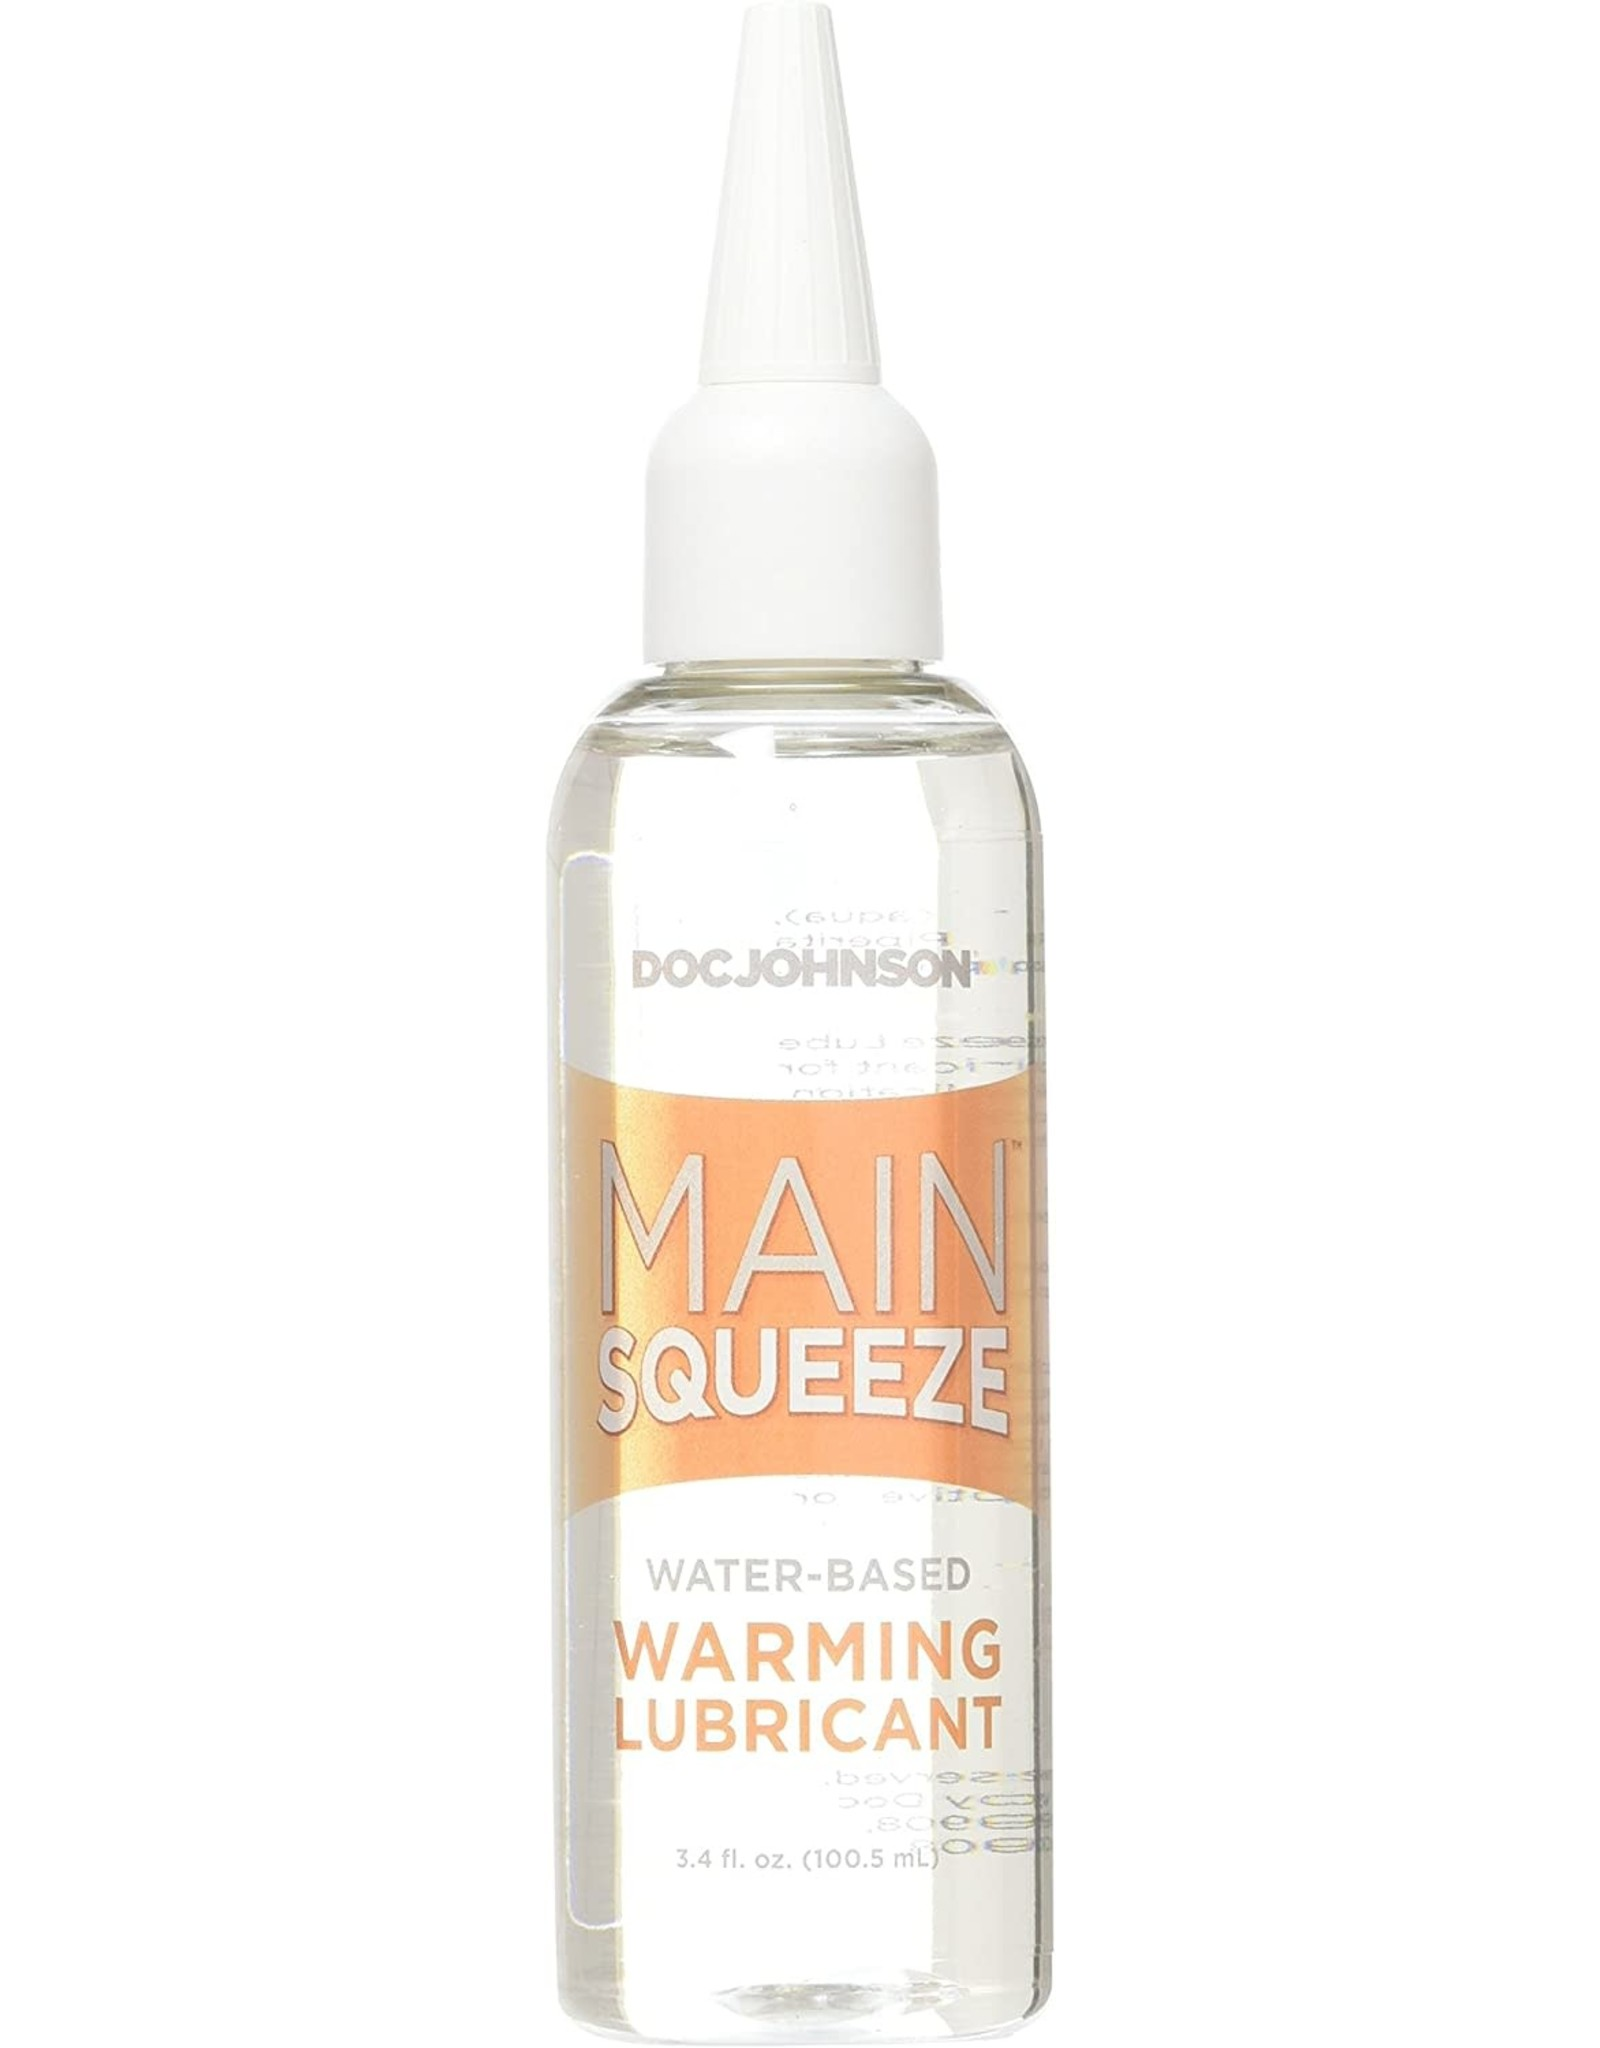 MAIN SQUEEZE LUBE - WATER-BASED - WARMING - 3.4 oz